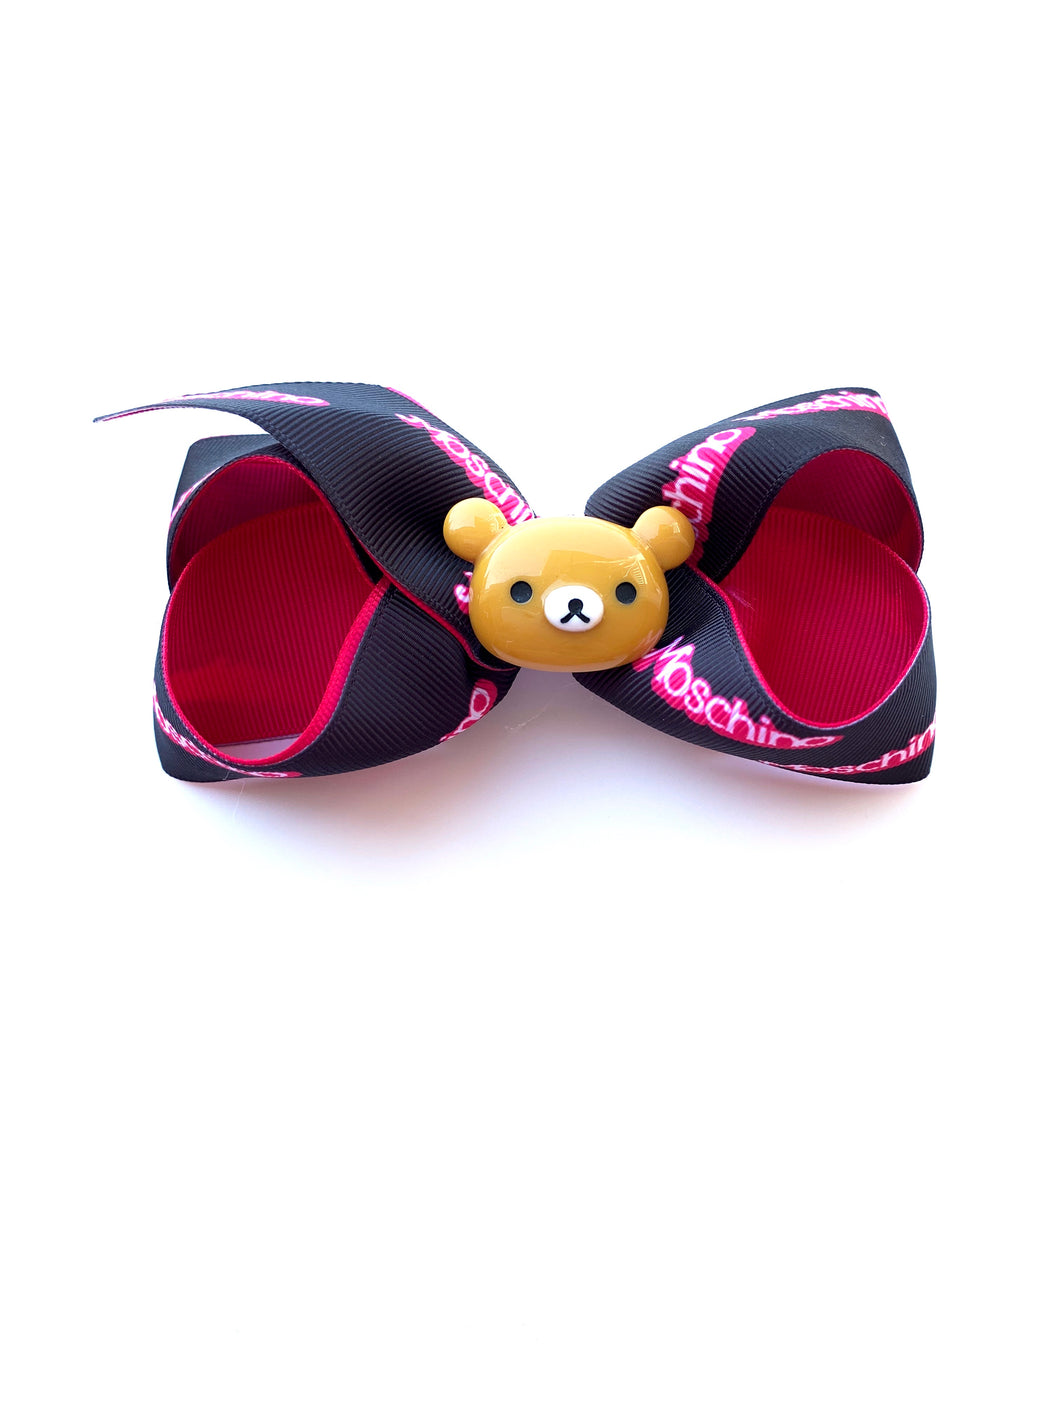 Black and pink TEDDY